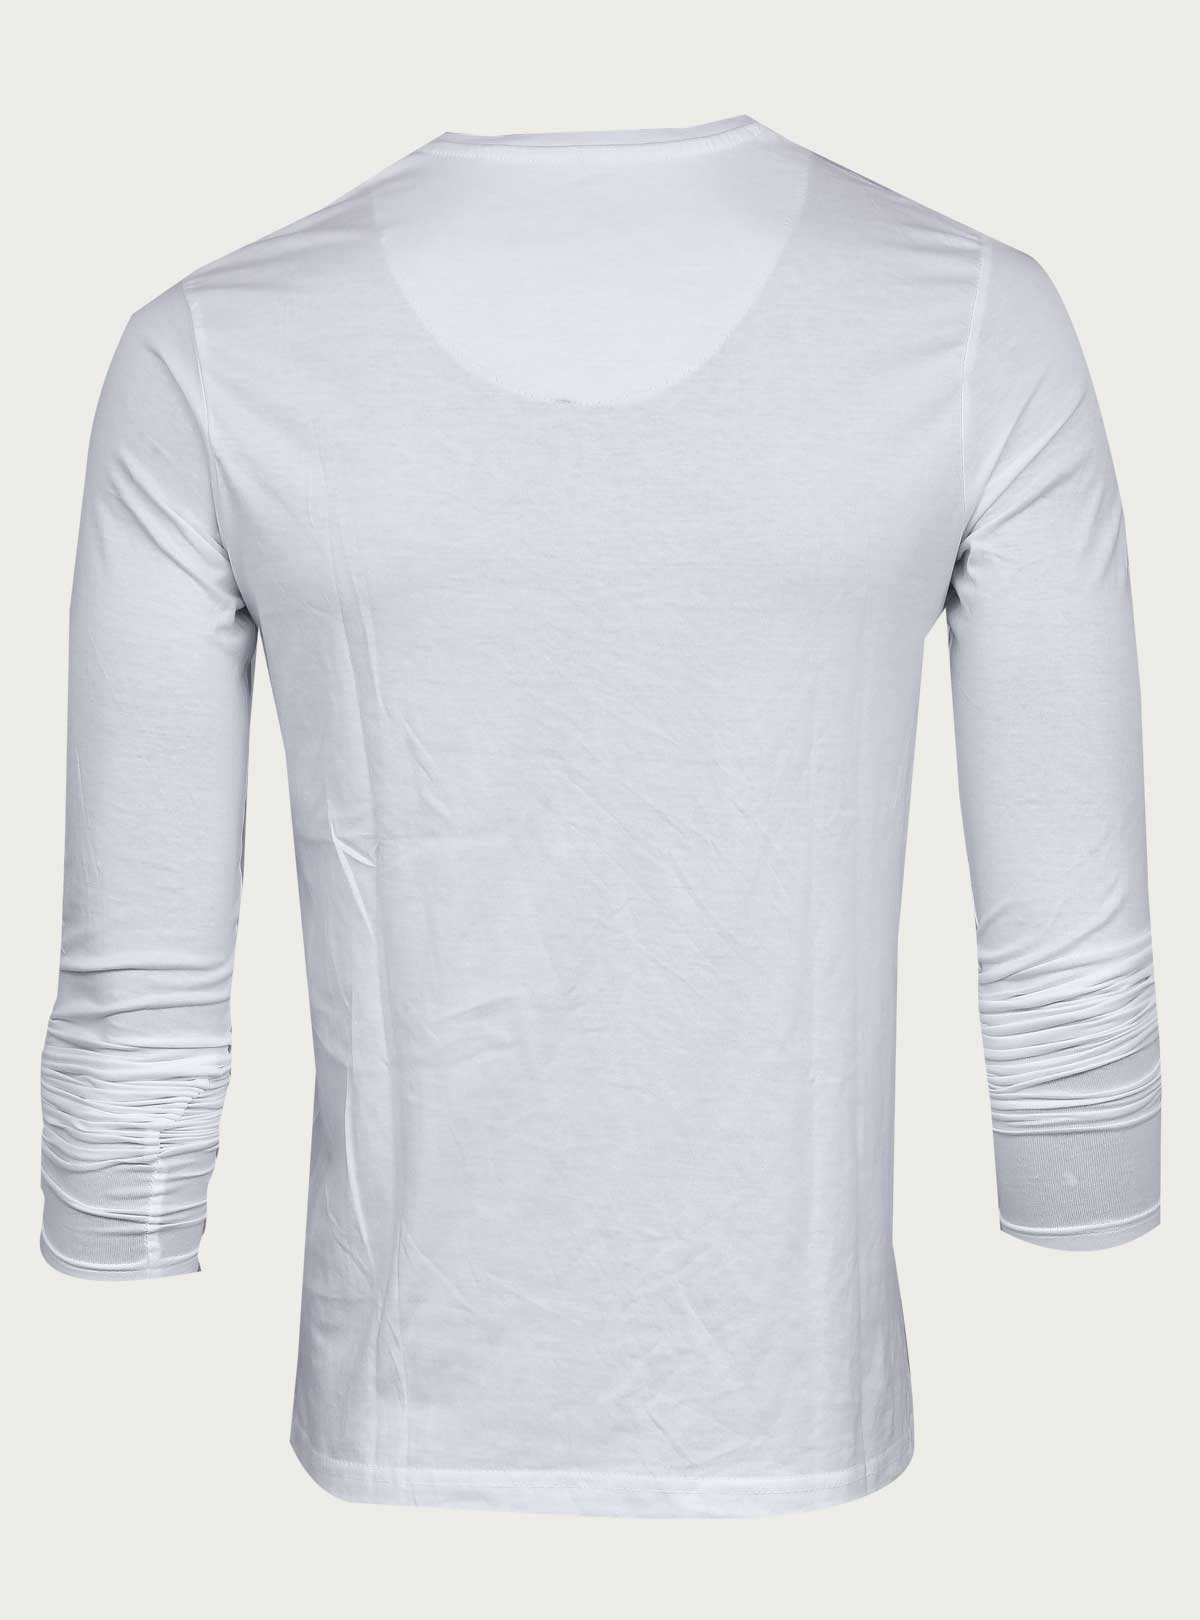 Full Sleeve T-Shirt